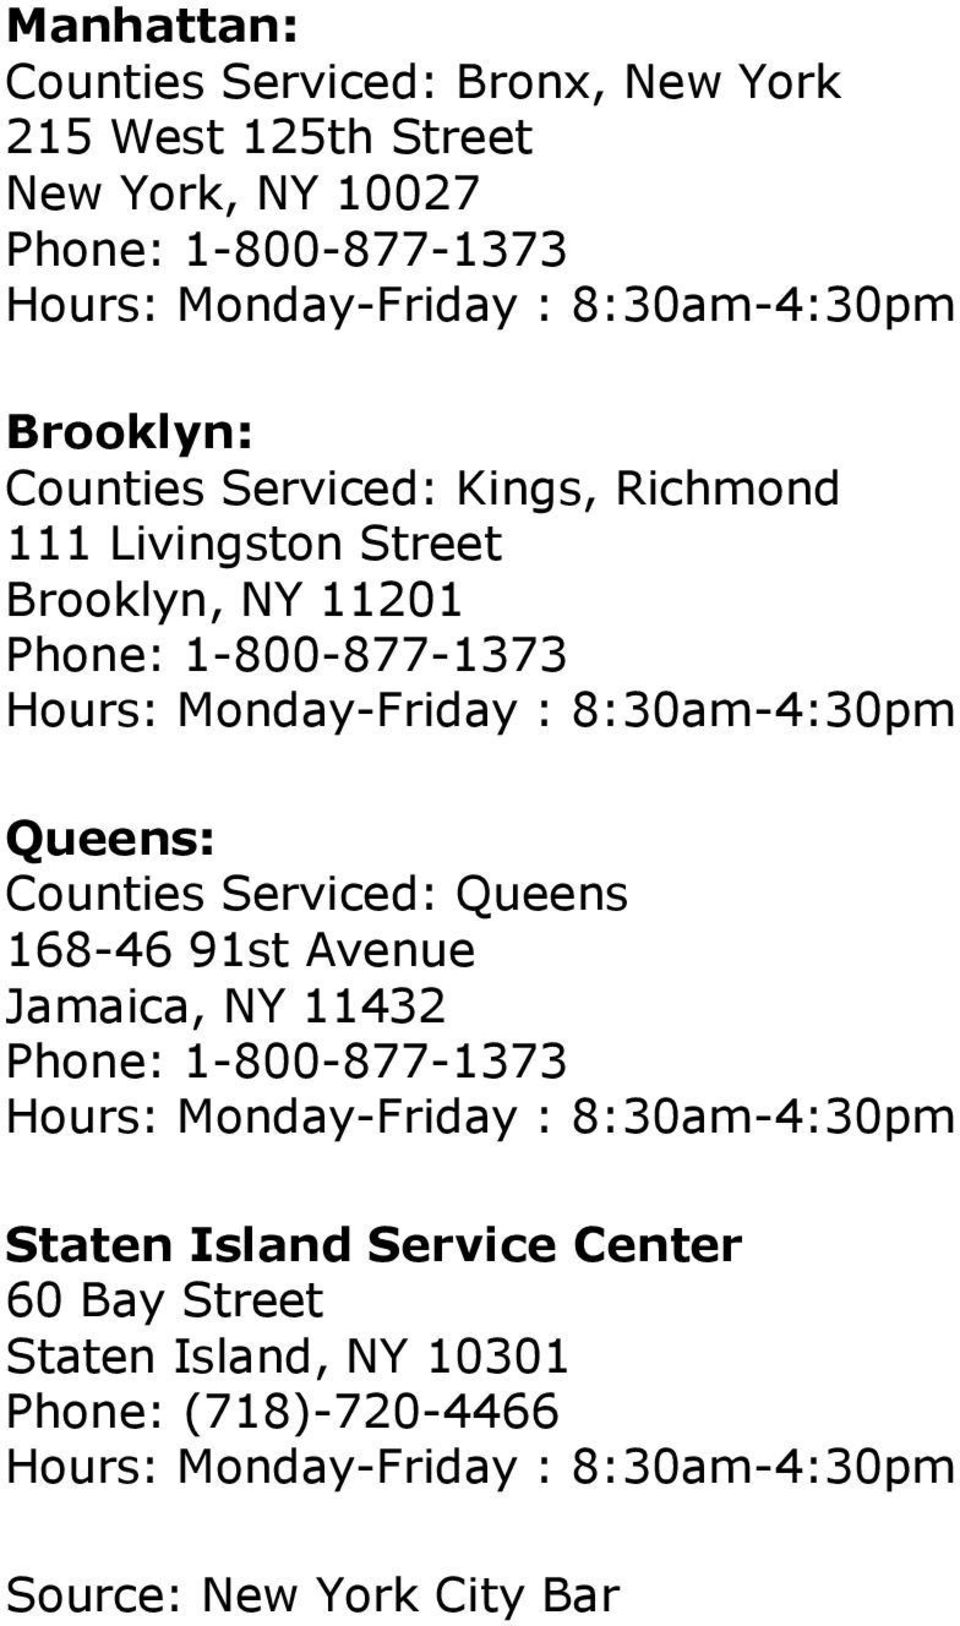 Queens: Counties Serviced: Queens 168-46 91st Avenue Jamaica, NY 11432 Staten Island